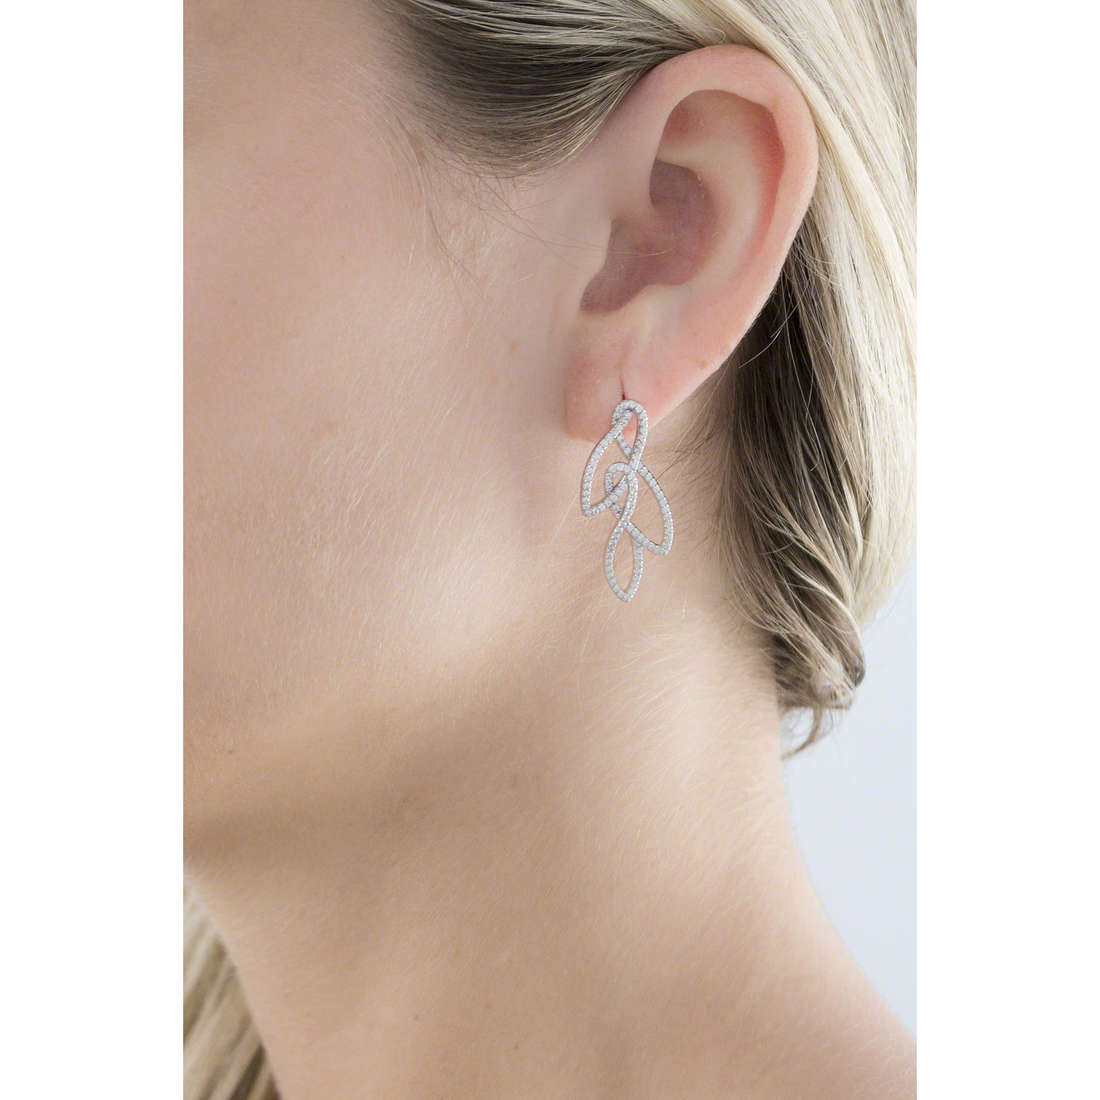 Morellato earrings 1930 Michelle Hunziker woman SAHA11 indosso